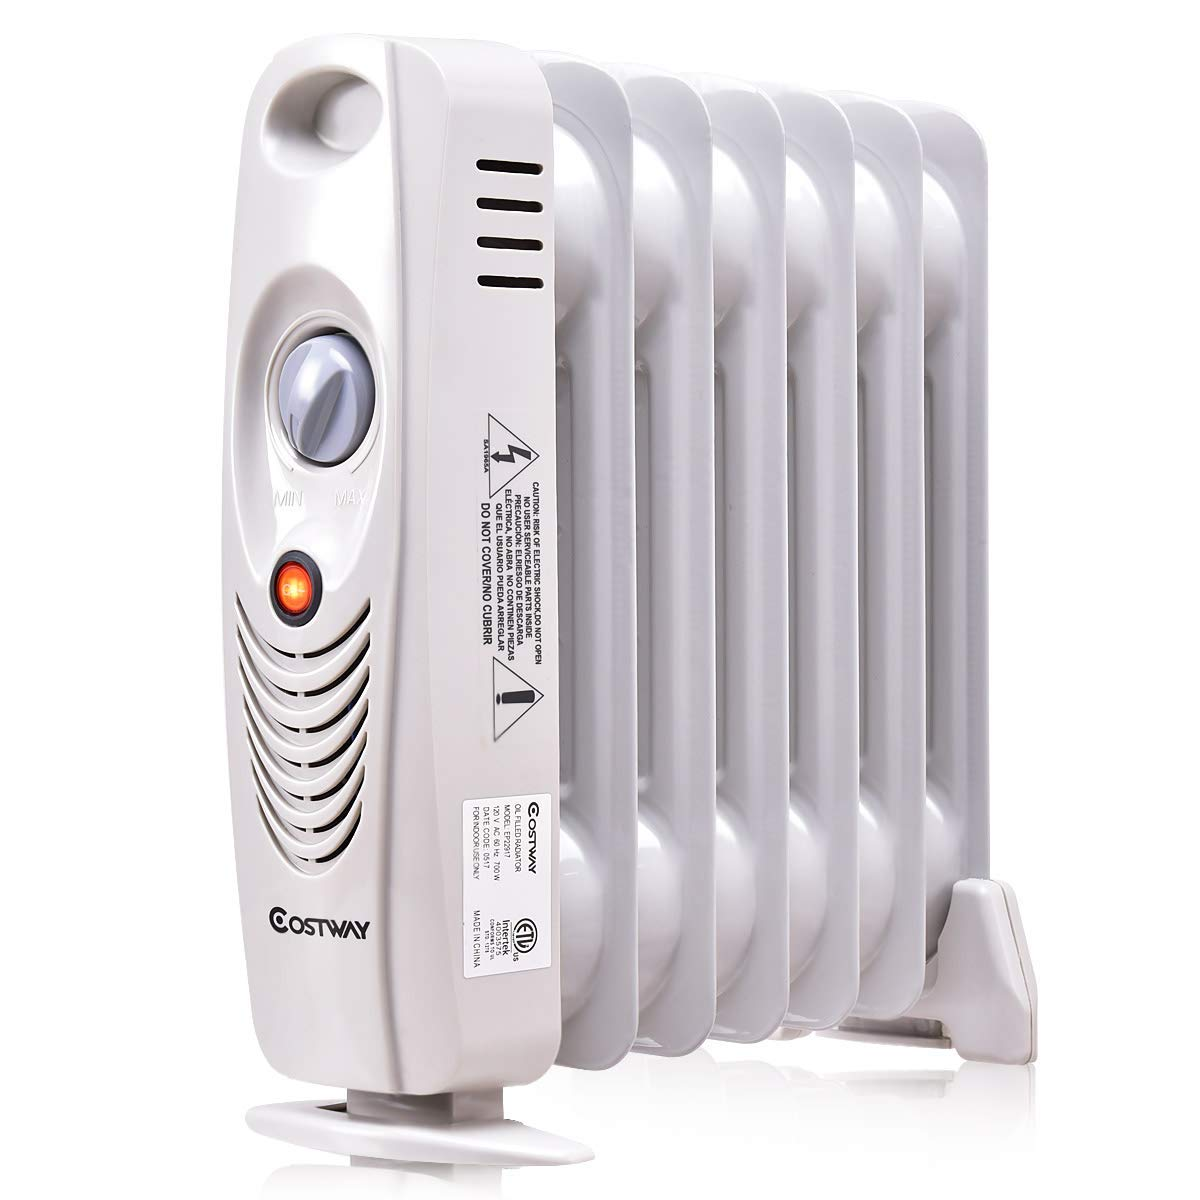 Top 8 Space Heater For Large Room Reviews 2020